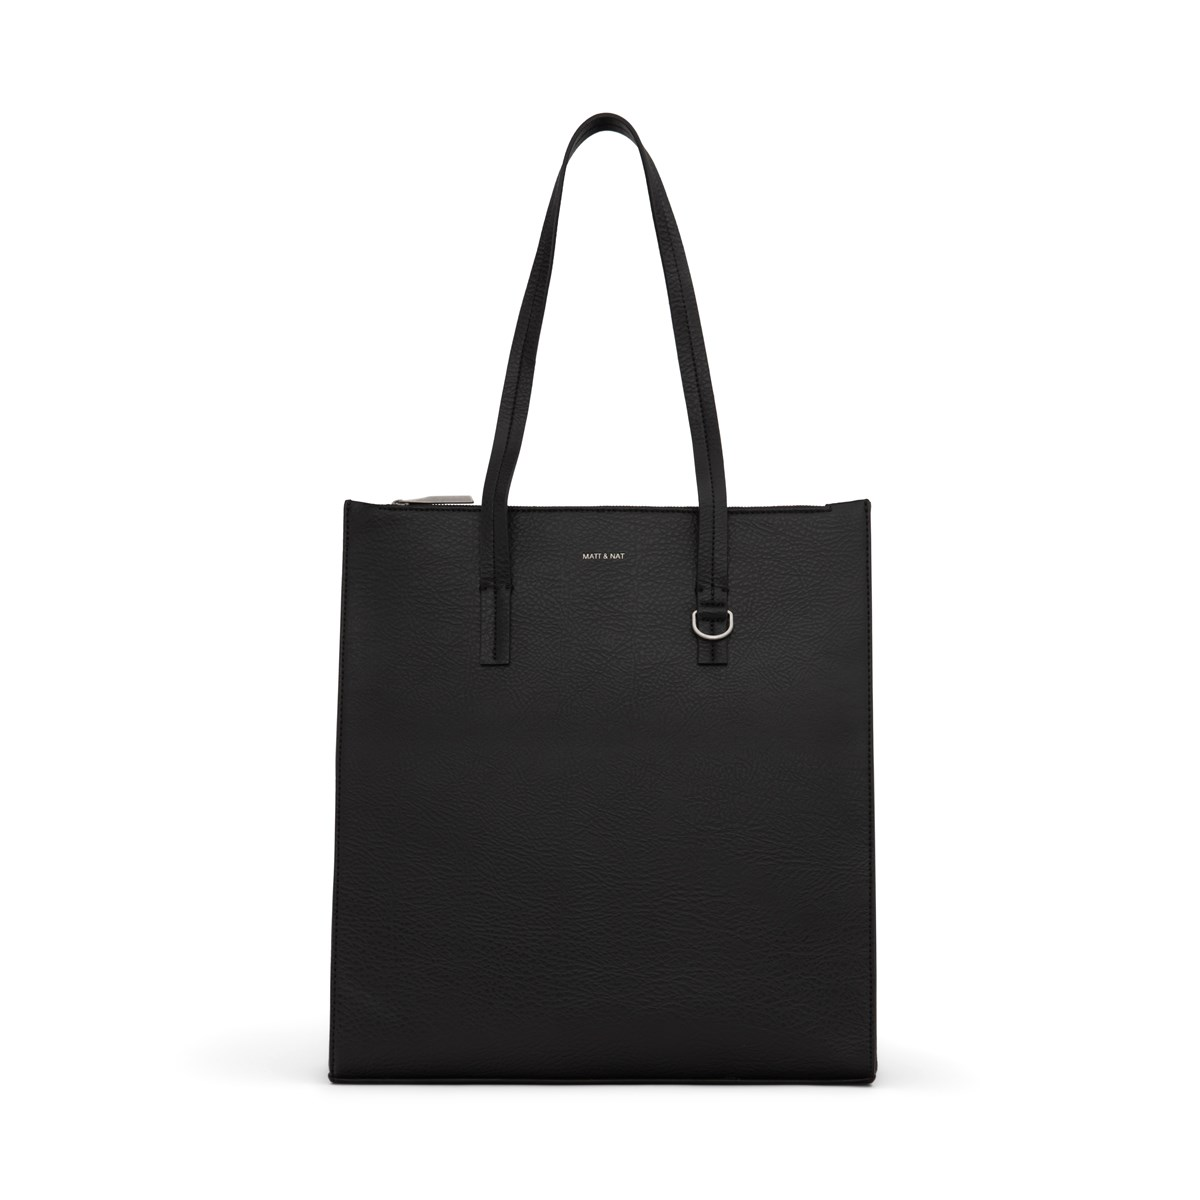 Canci Vegan Shoulder Bag in Black